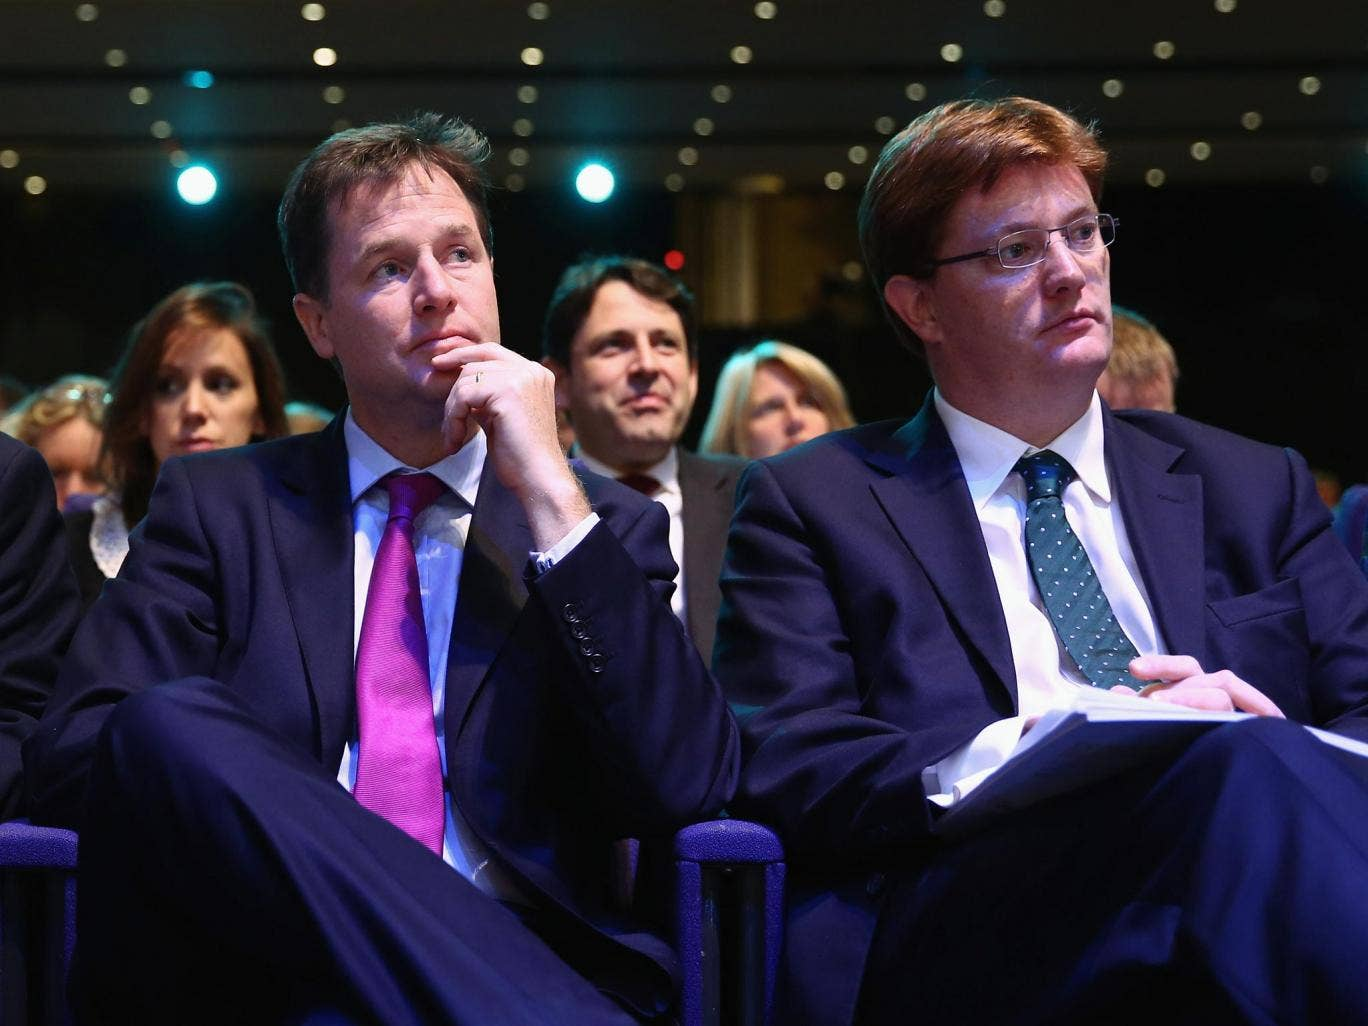 Nick Clegg and Danny Alexander believe they have the solution for dealing with the deficit